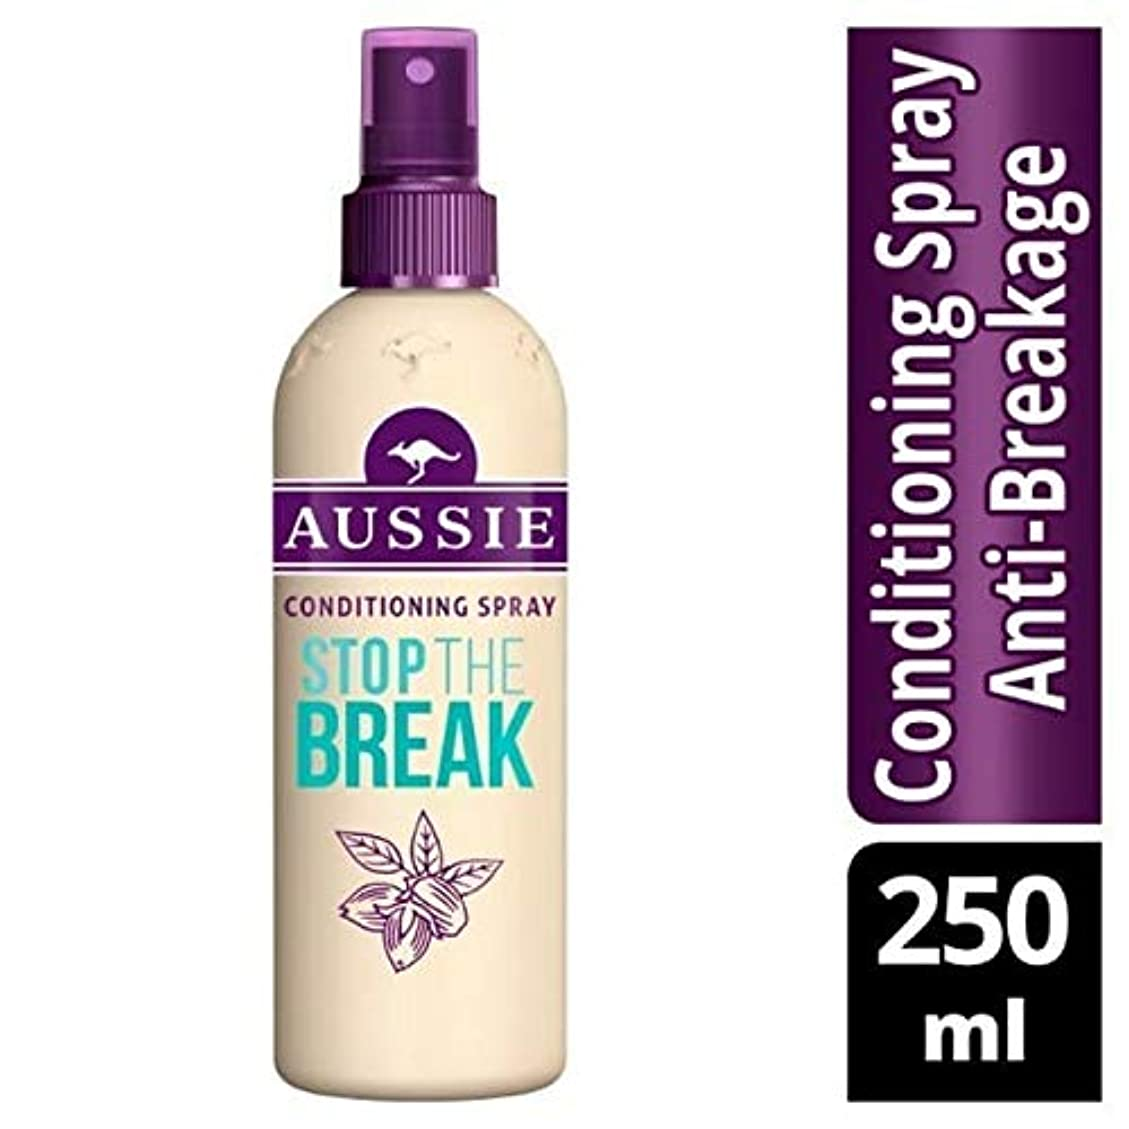 [Aussie ] オージーはブレーク保護&コンディショニングスプレー250ミリリットルを停止します - Aussie Stop The Break Protection & Conditioning Spray 250ml...